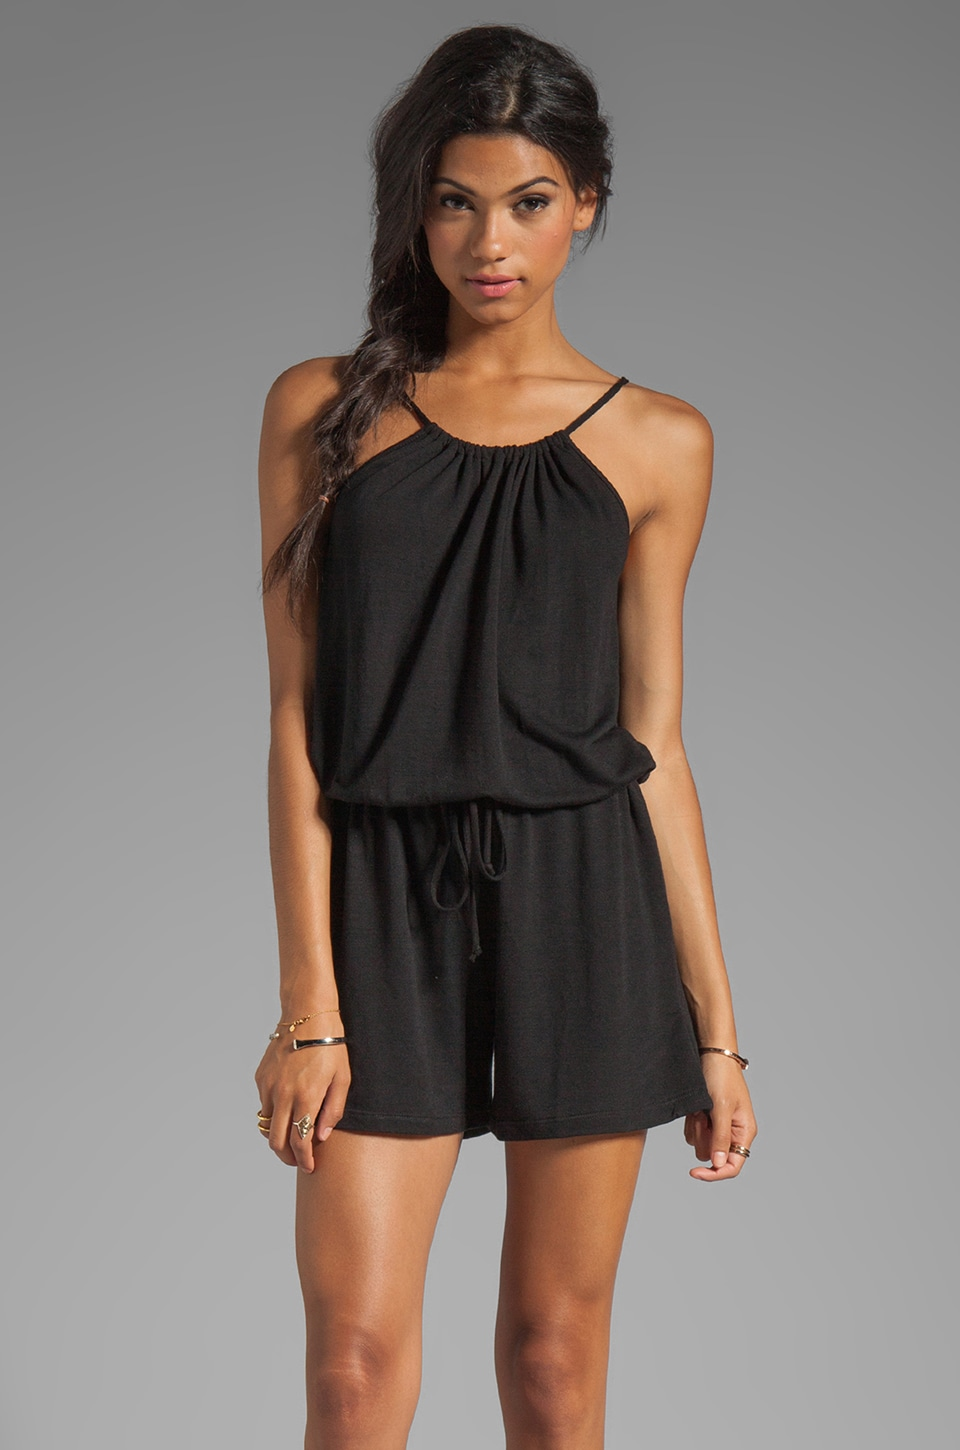 Lanston Halter Romper in Black